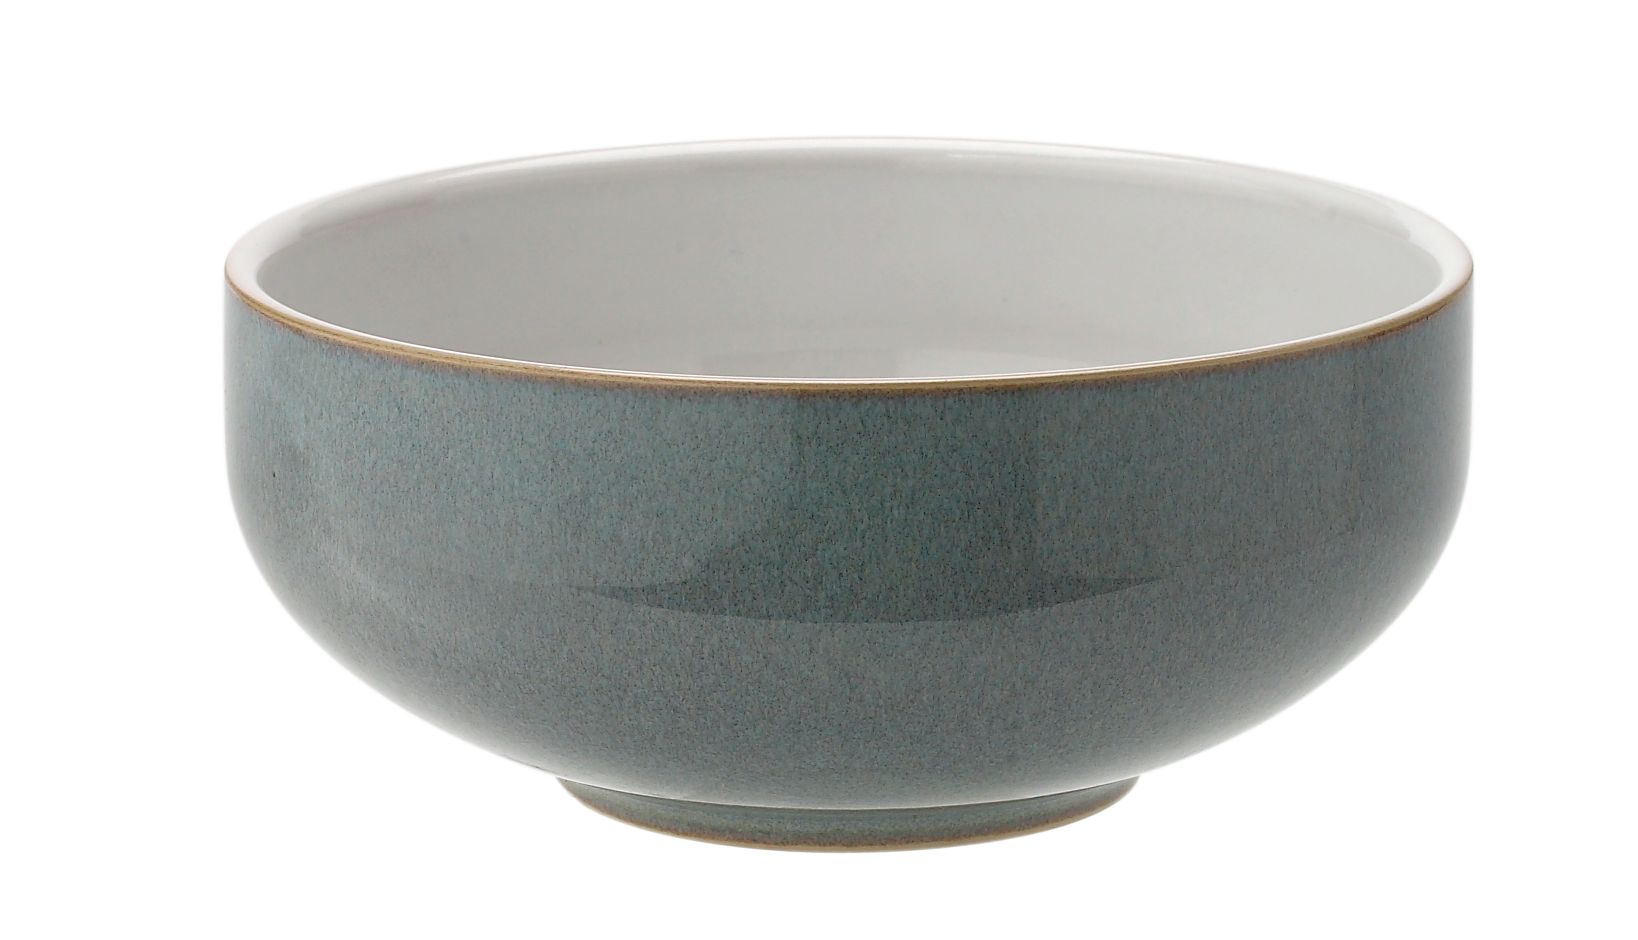 Jet grey cereal bowl